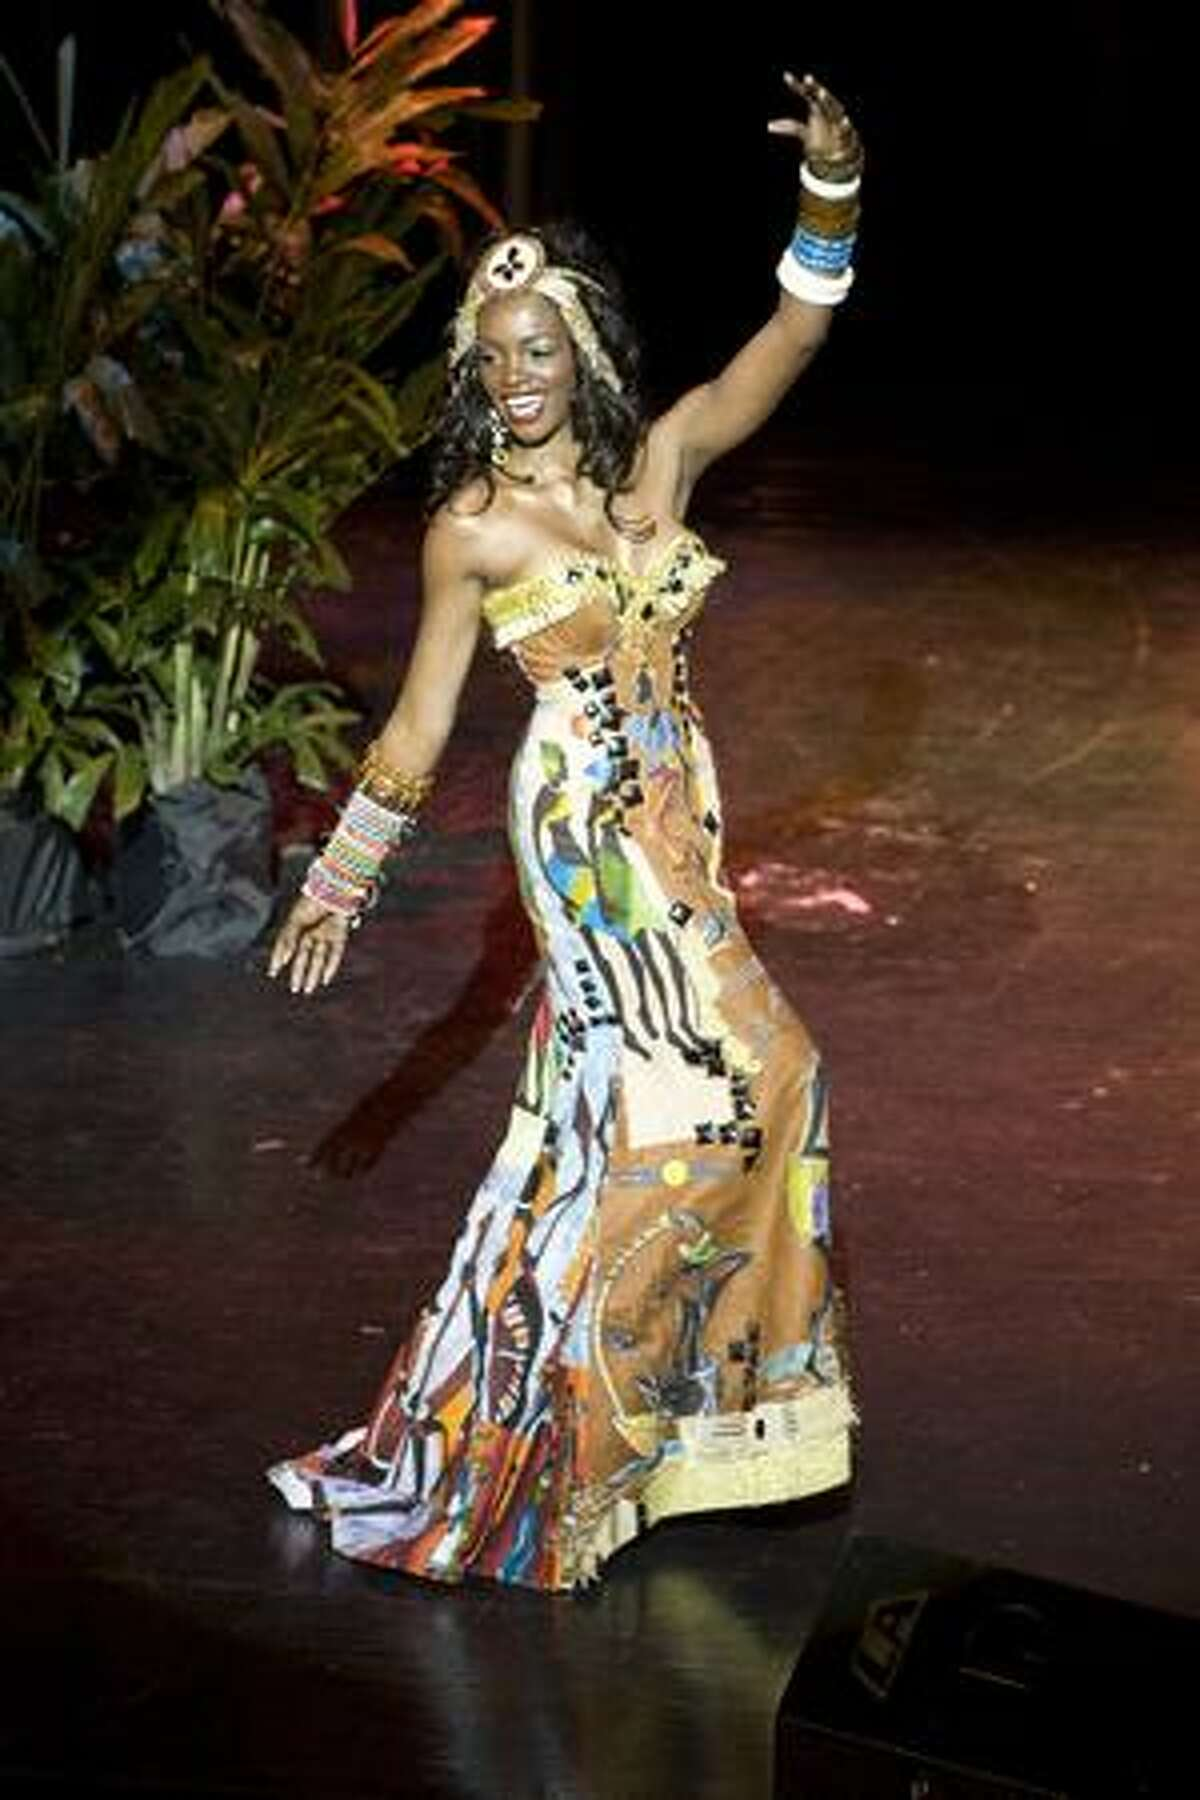 Nelsa Alves, Miss Angola, performs in a national costume show in the Bahamas on Monday as part of the preparations for the Miss Universe 2009 competition, with the winner to be crowned Aug. 23. The national costume show is a traditional part of the run-up to the finals that has no bearing on the choice of Miss Universe.